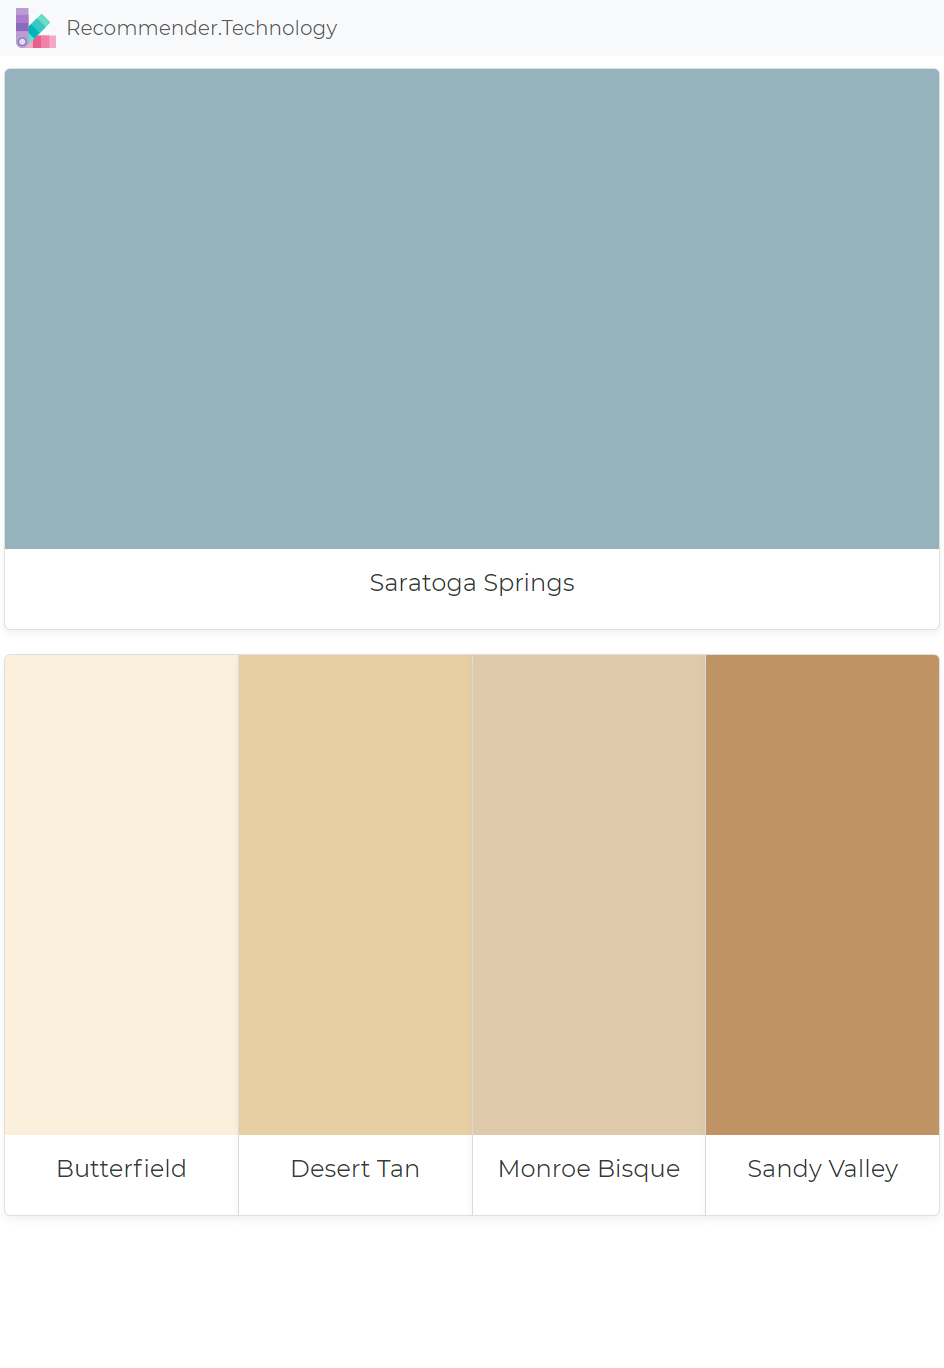 Saratoga Springs Butterfield Desert Tan Monroe Bisque